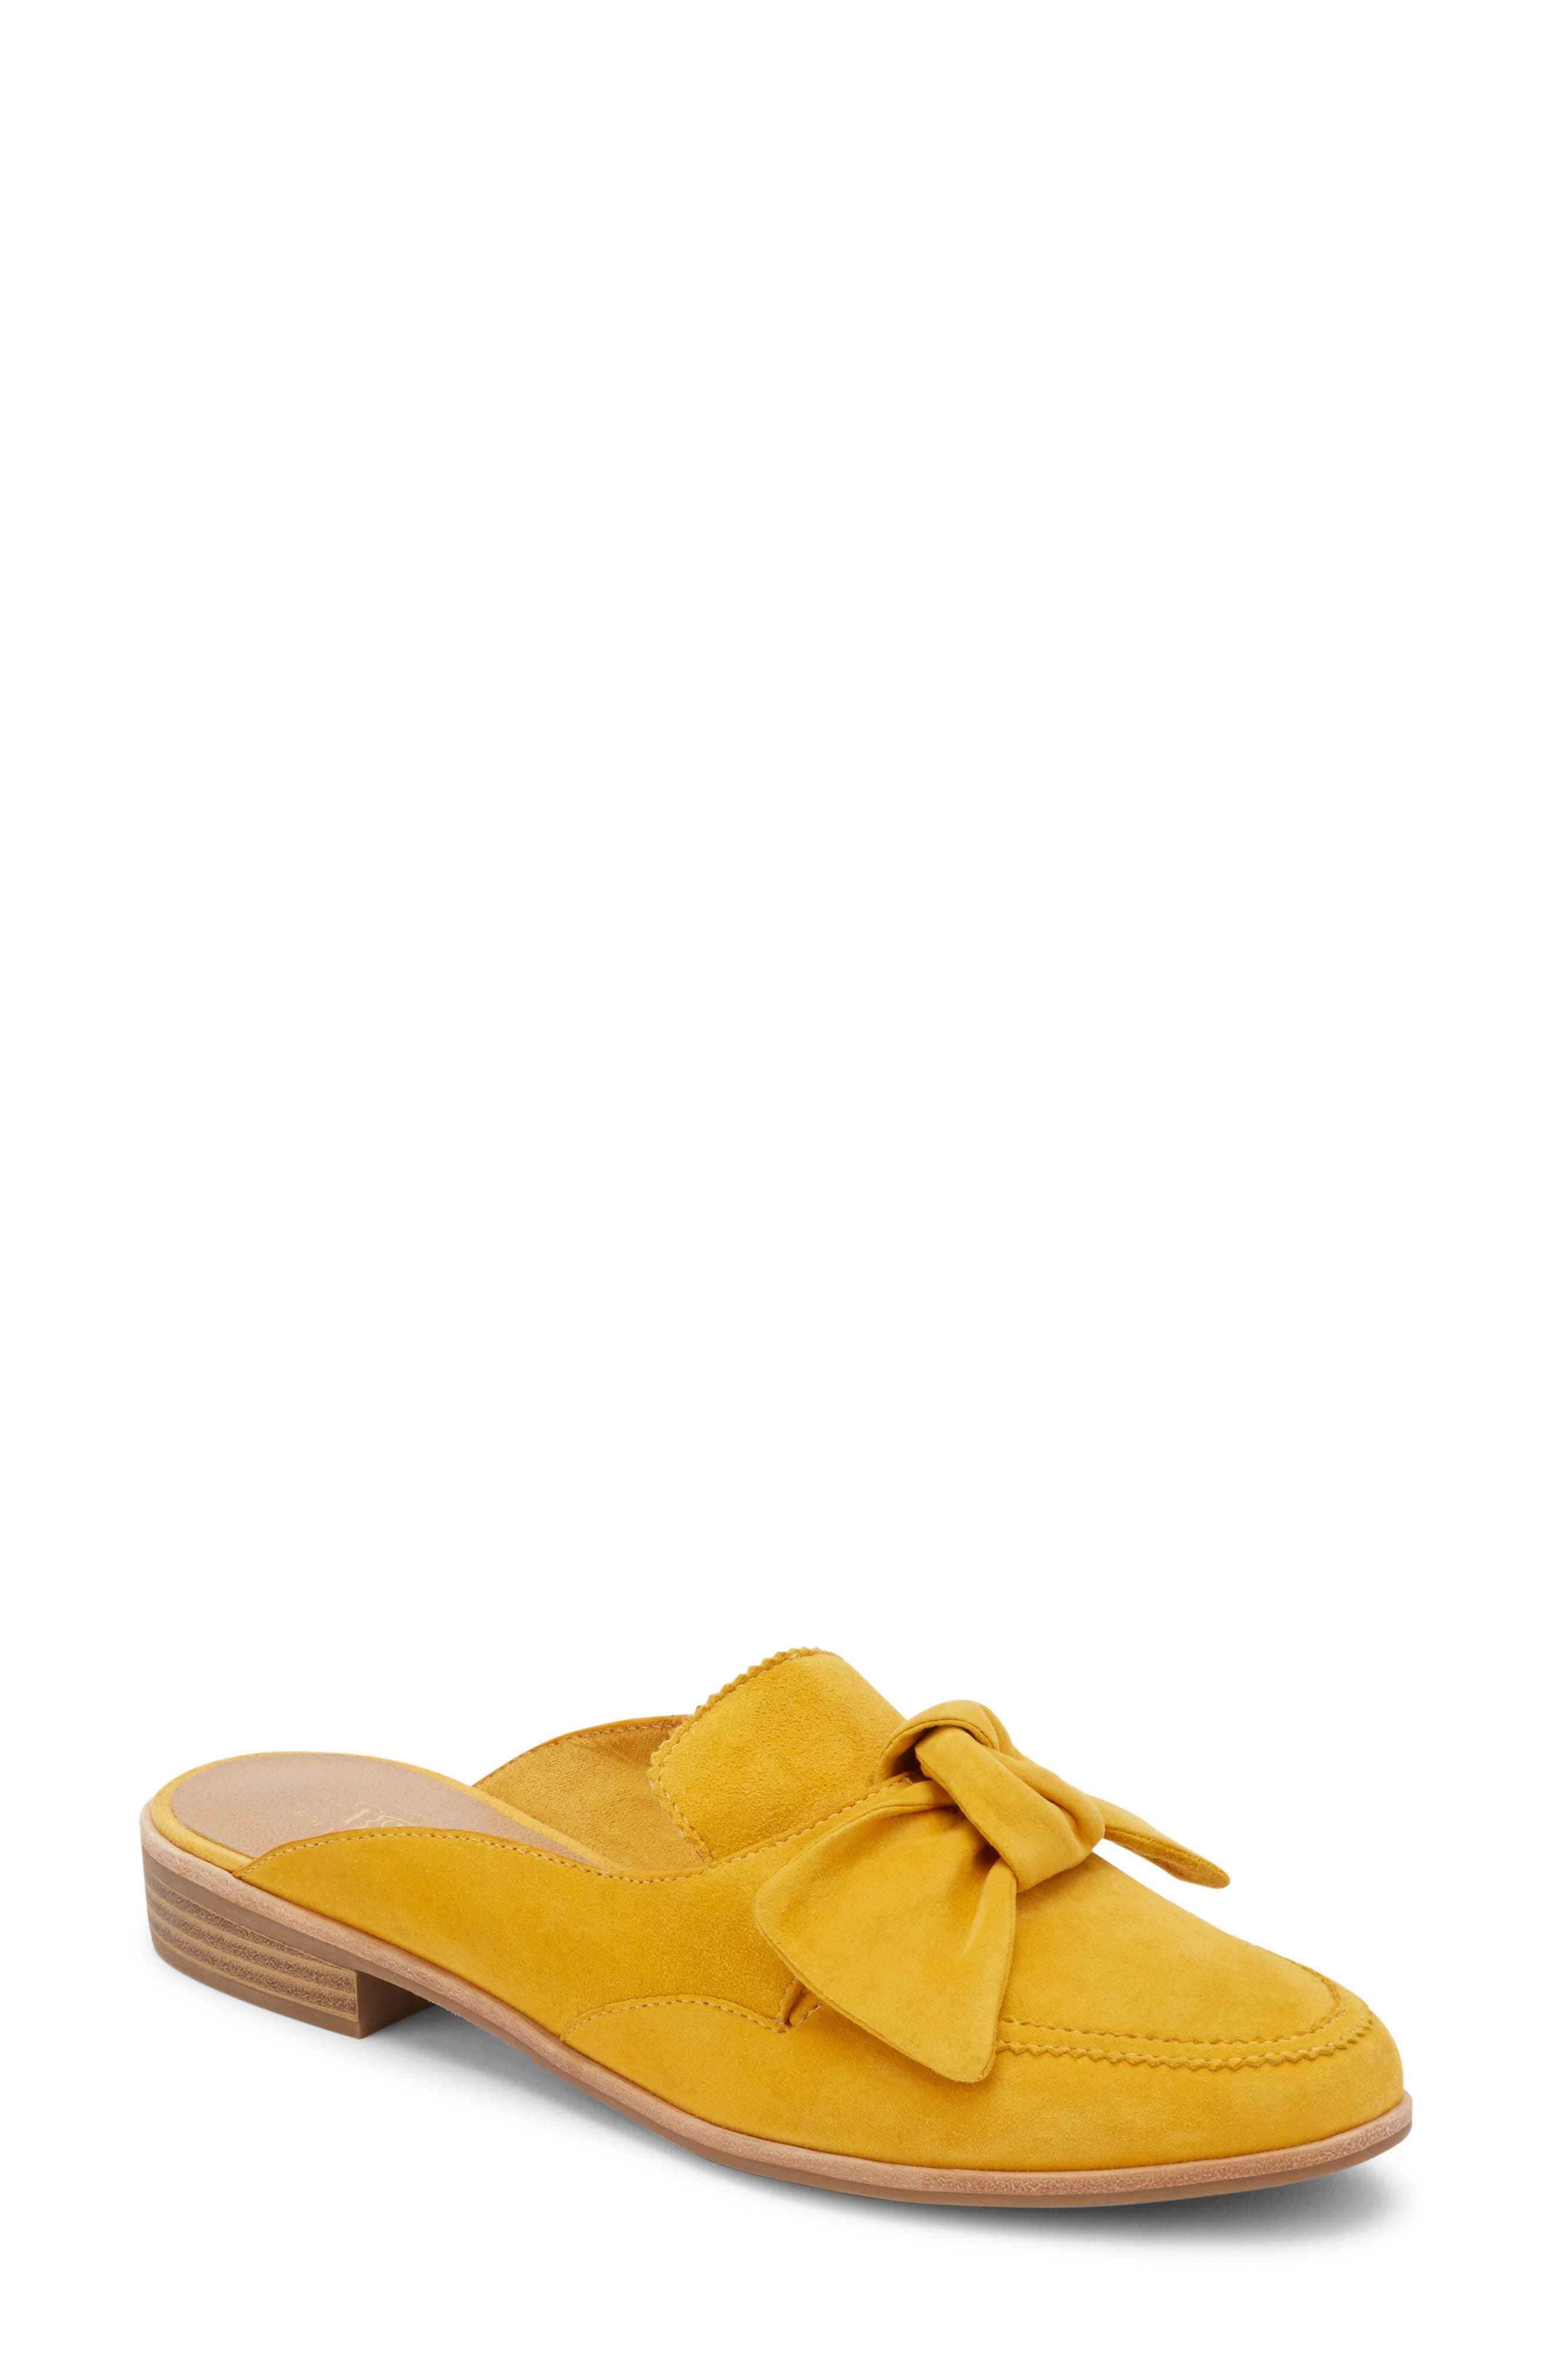 Ebbie Bow Mule,                         Main,                         color, YELLOW SUEDE